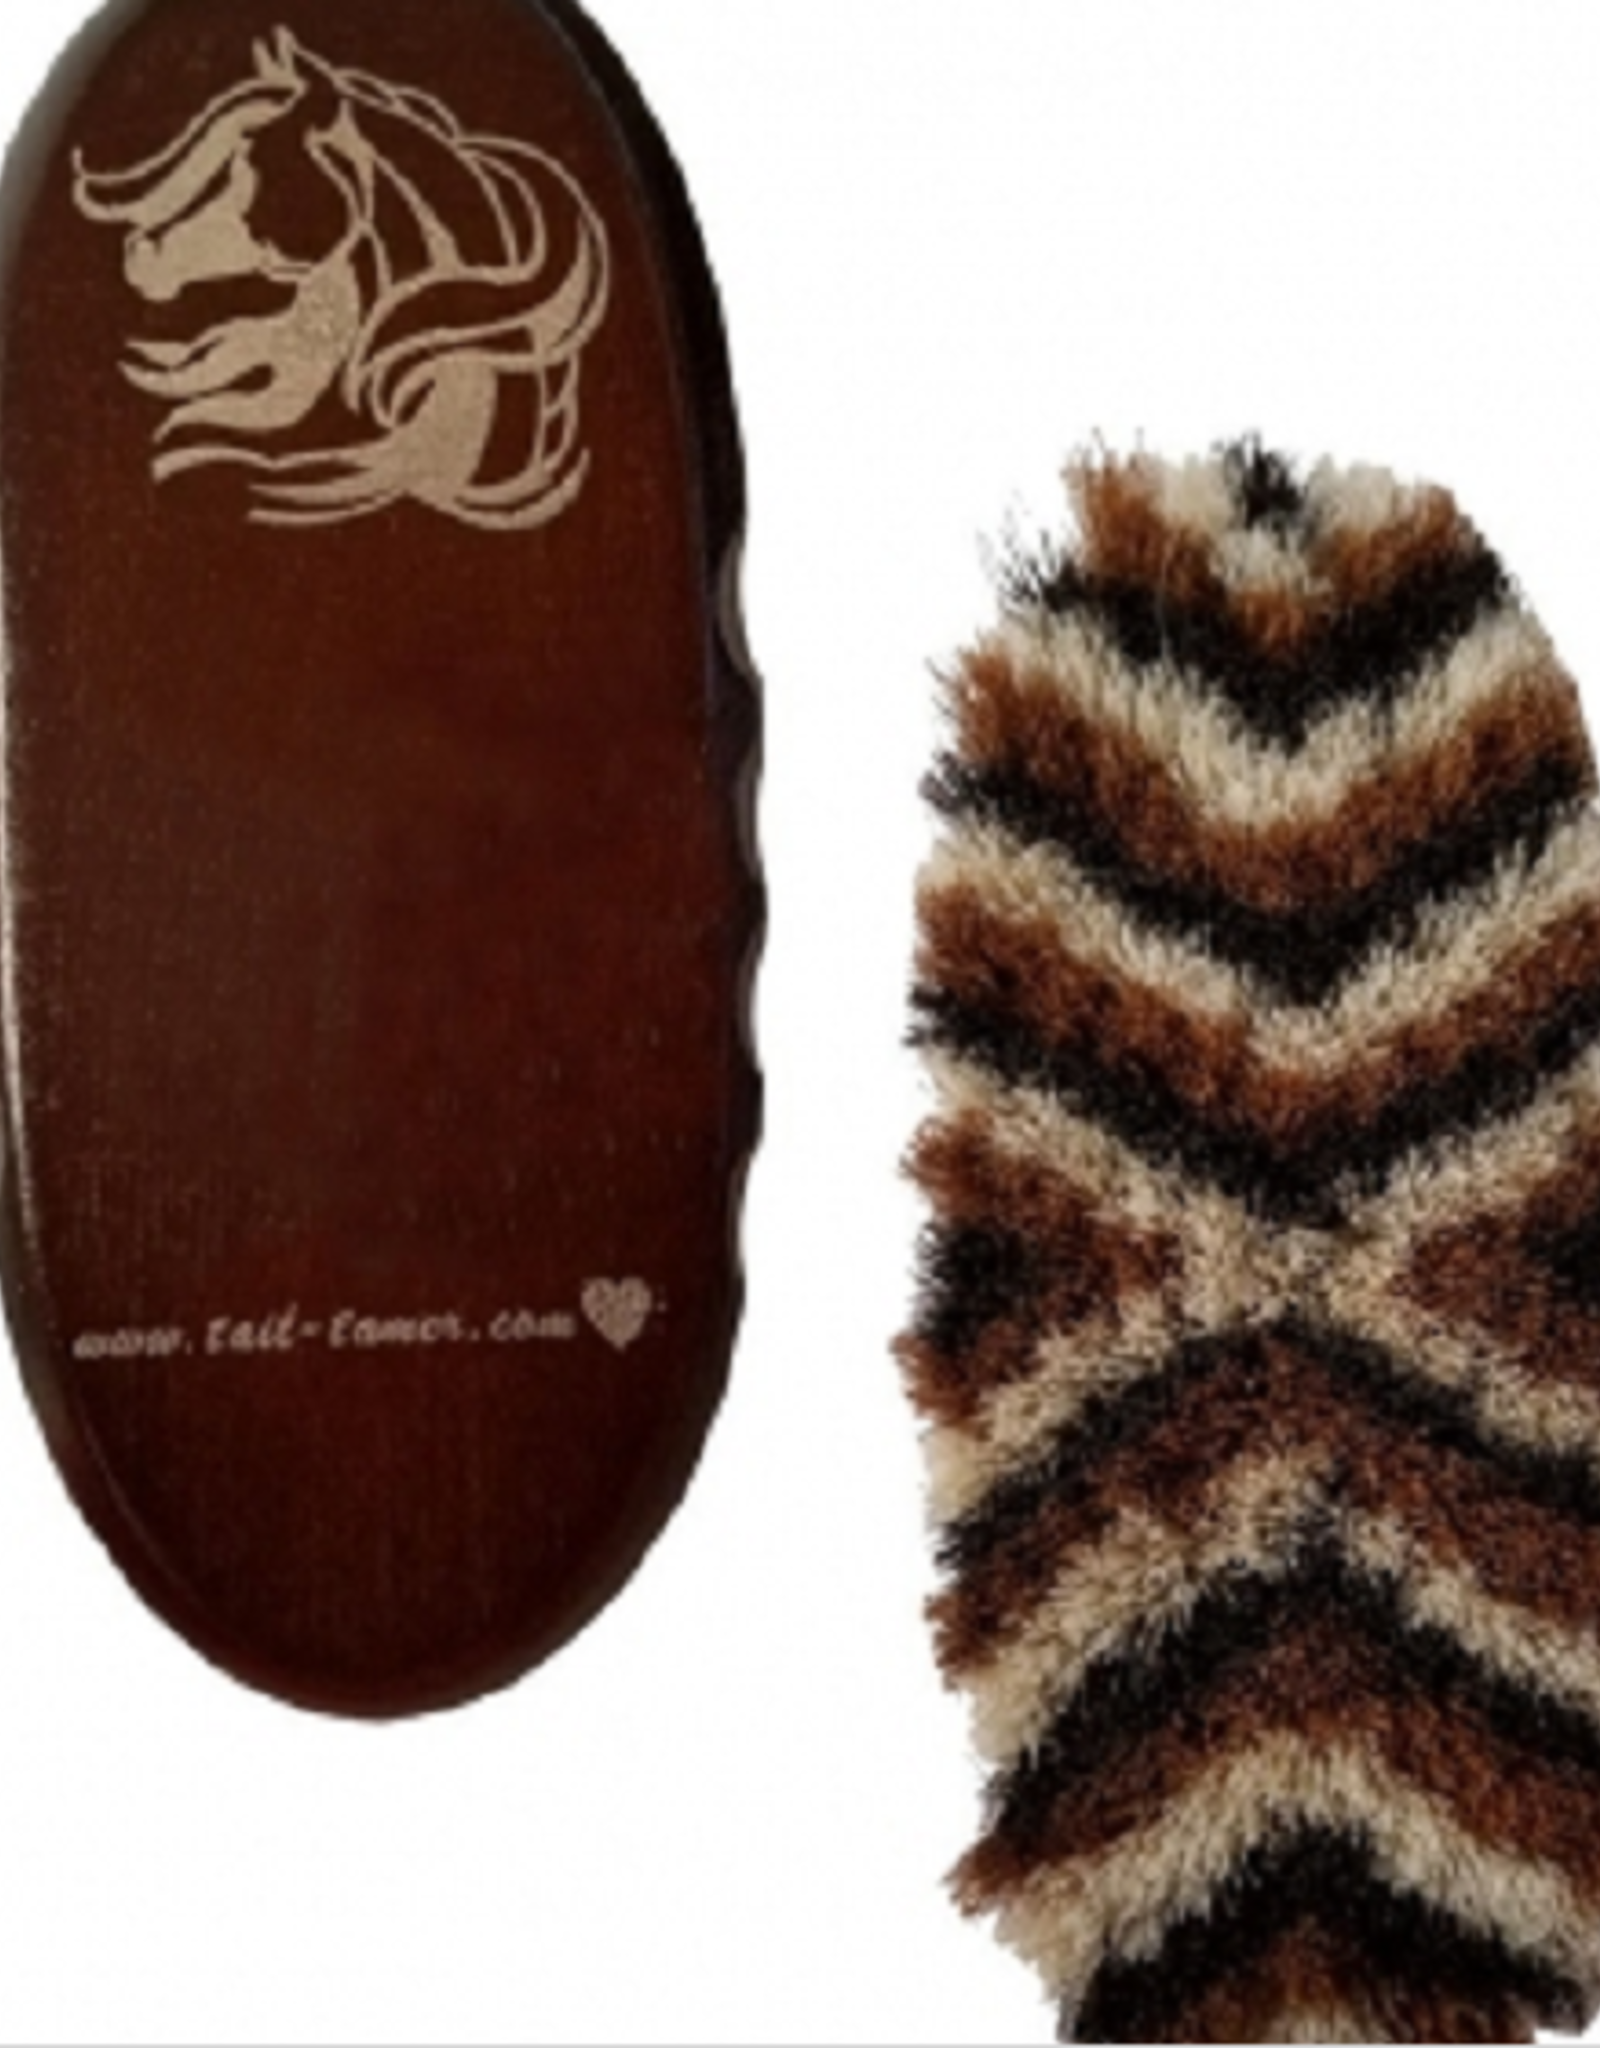 TAIL TAMER SMALL OVAL HORSEHAIR BRUSH